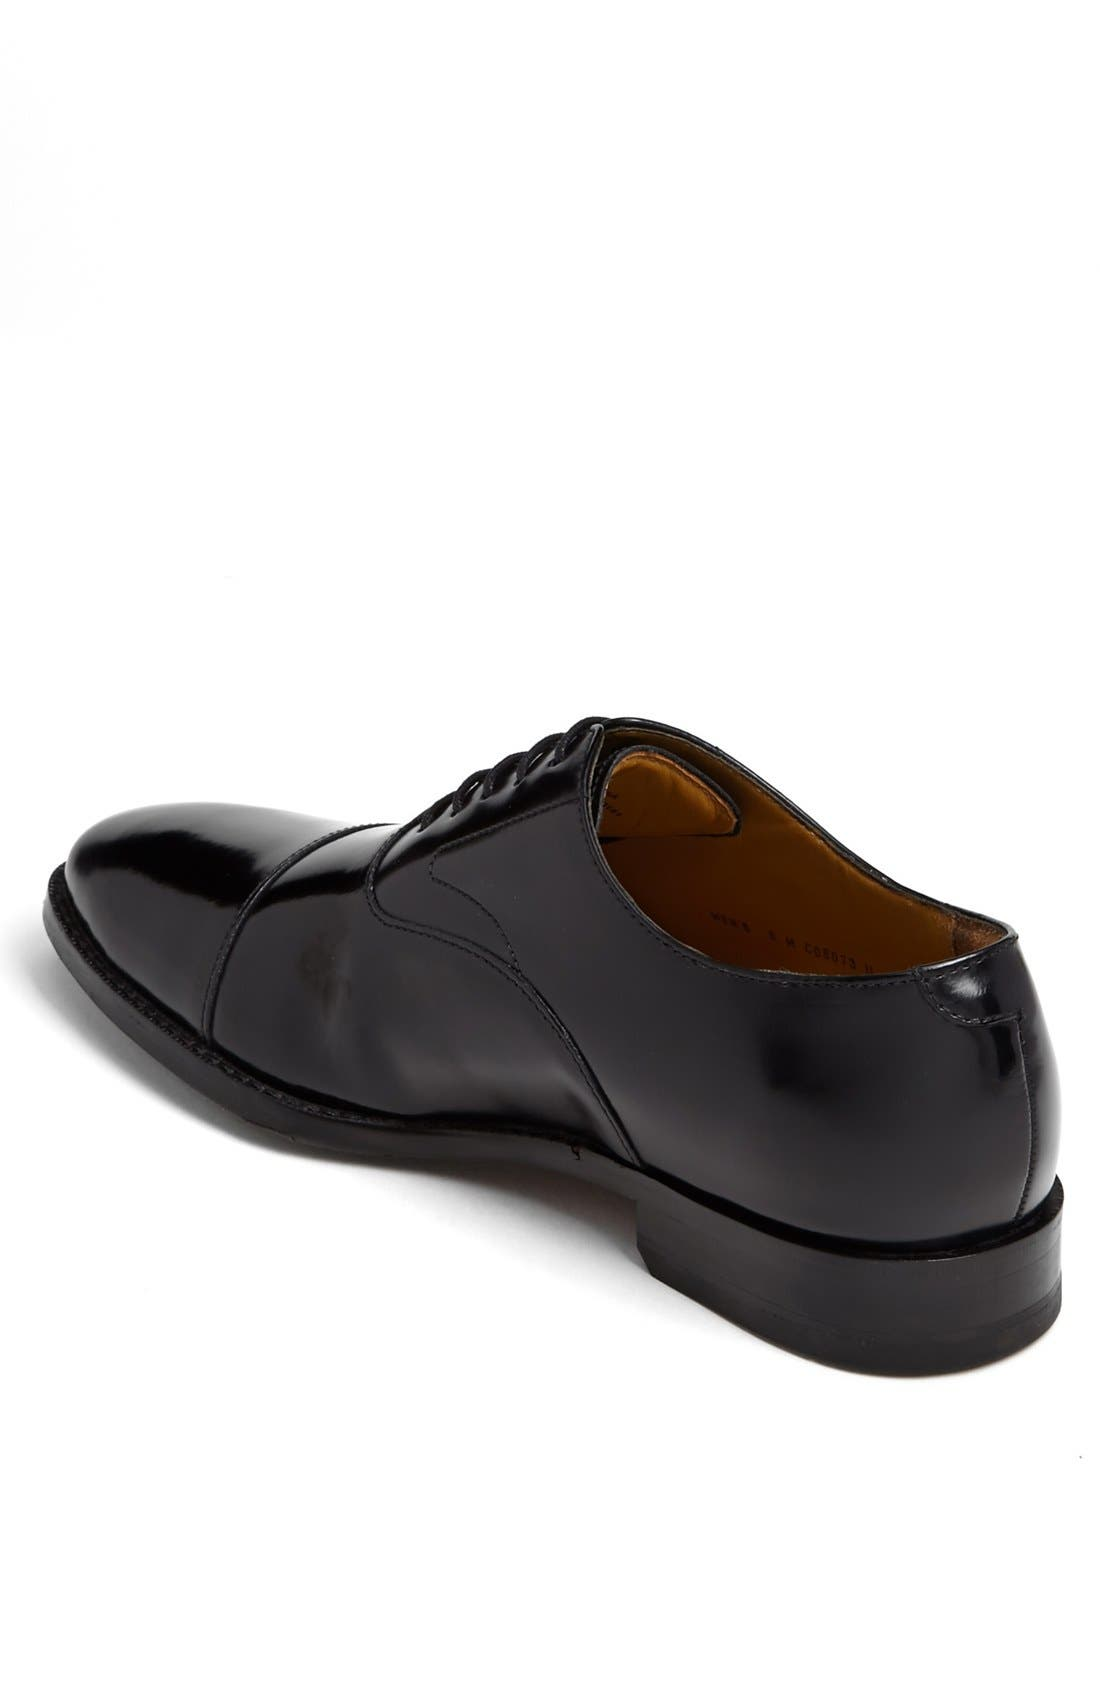 Alternate Image 2  - Cole Haan 'Air Garrett' Cap Toe Oxford   (Men)